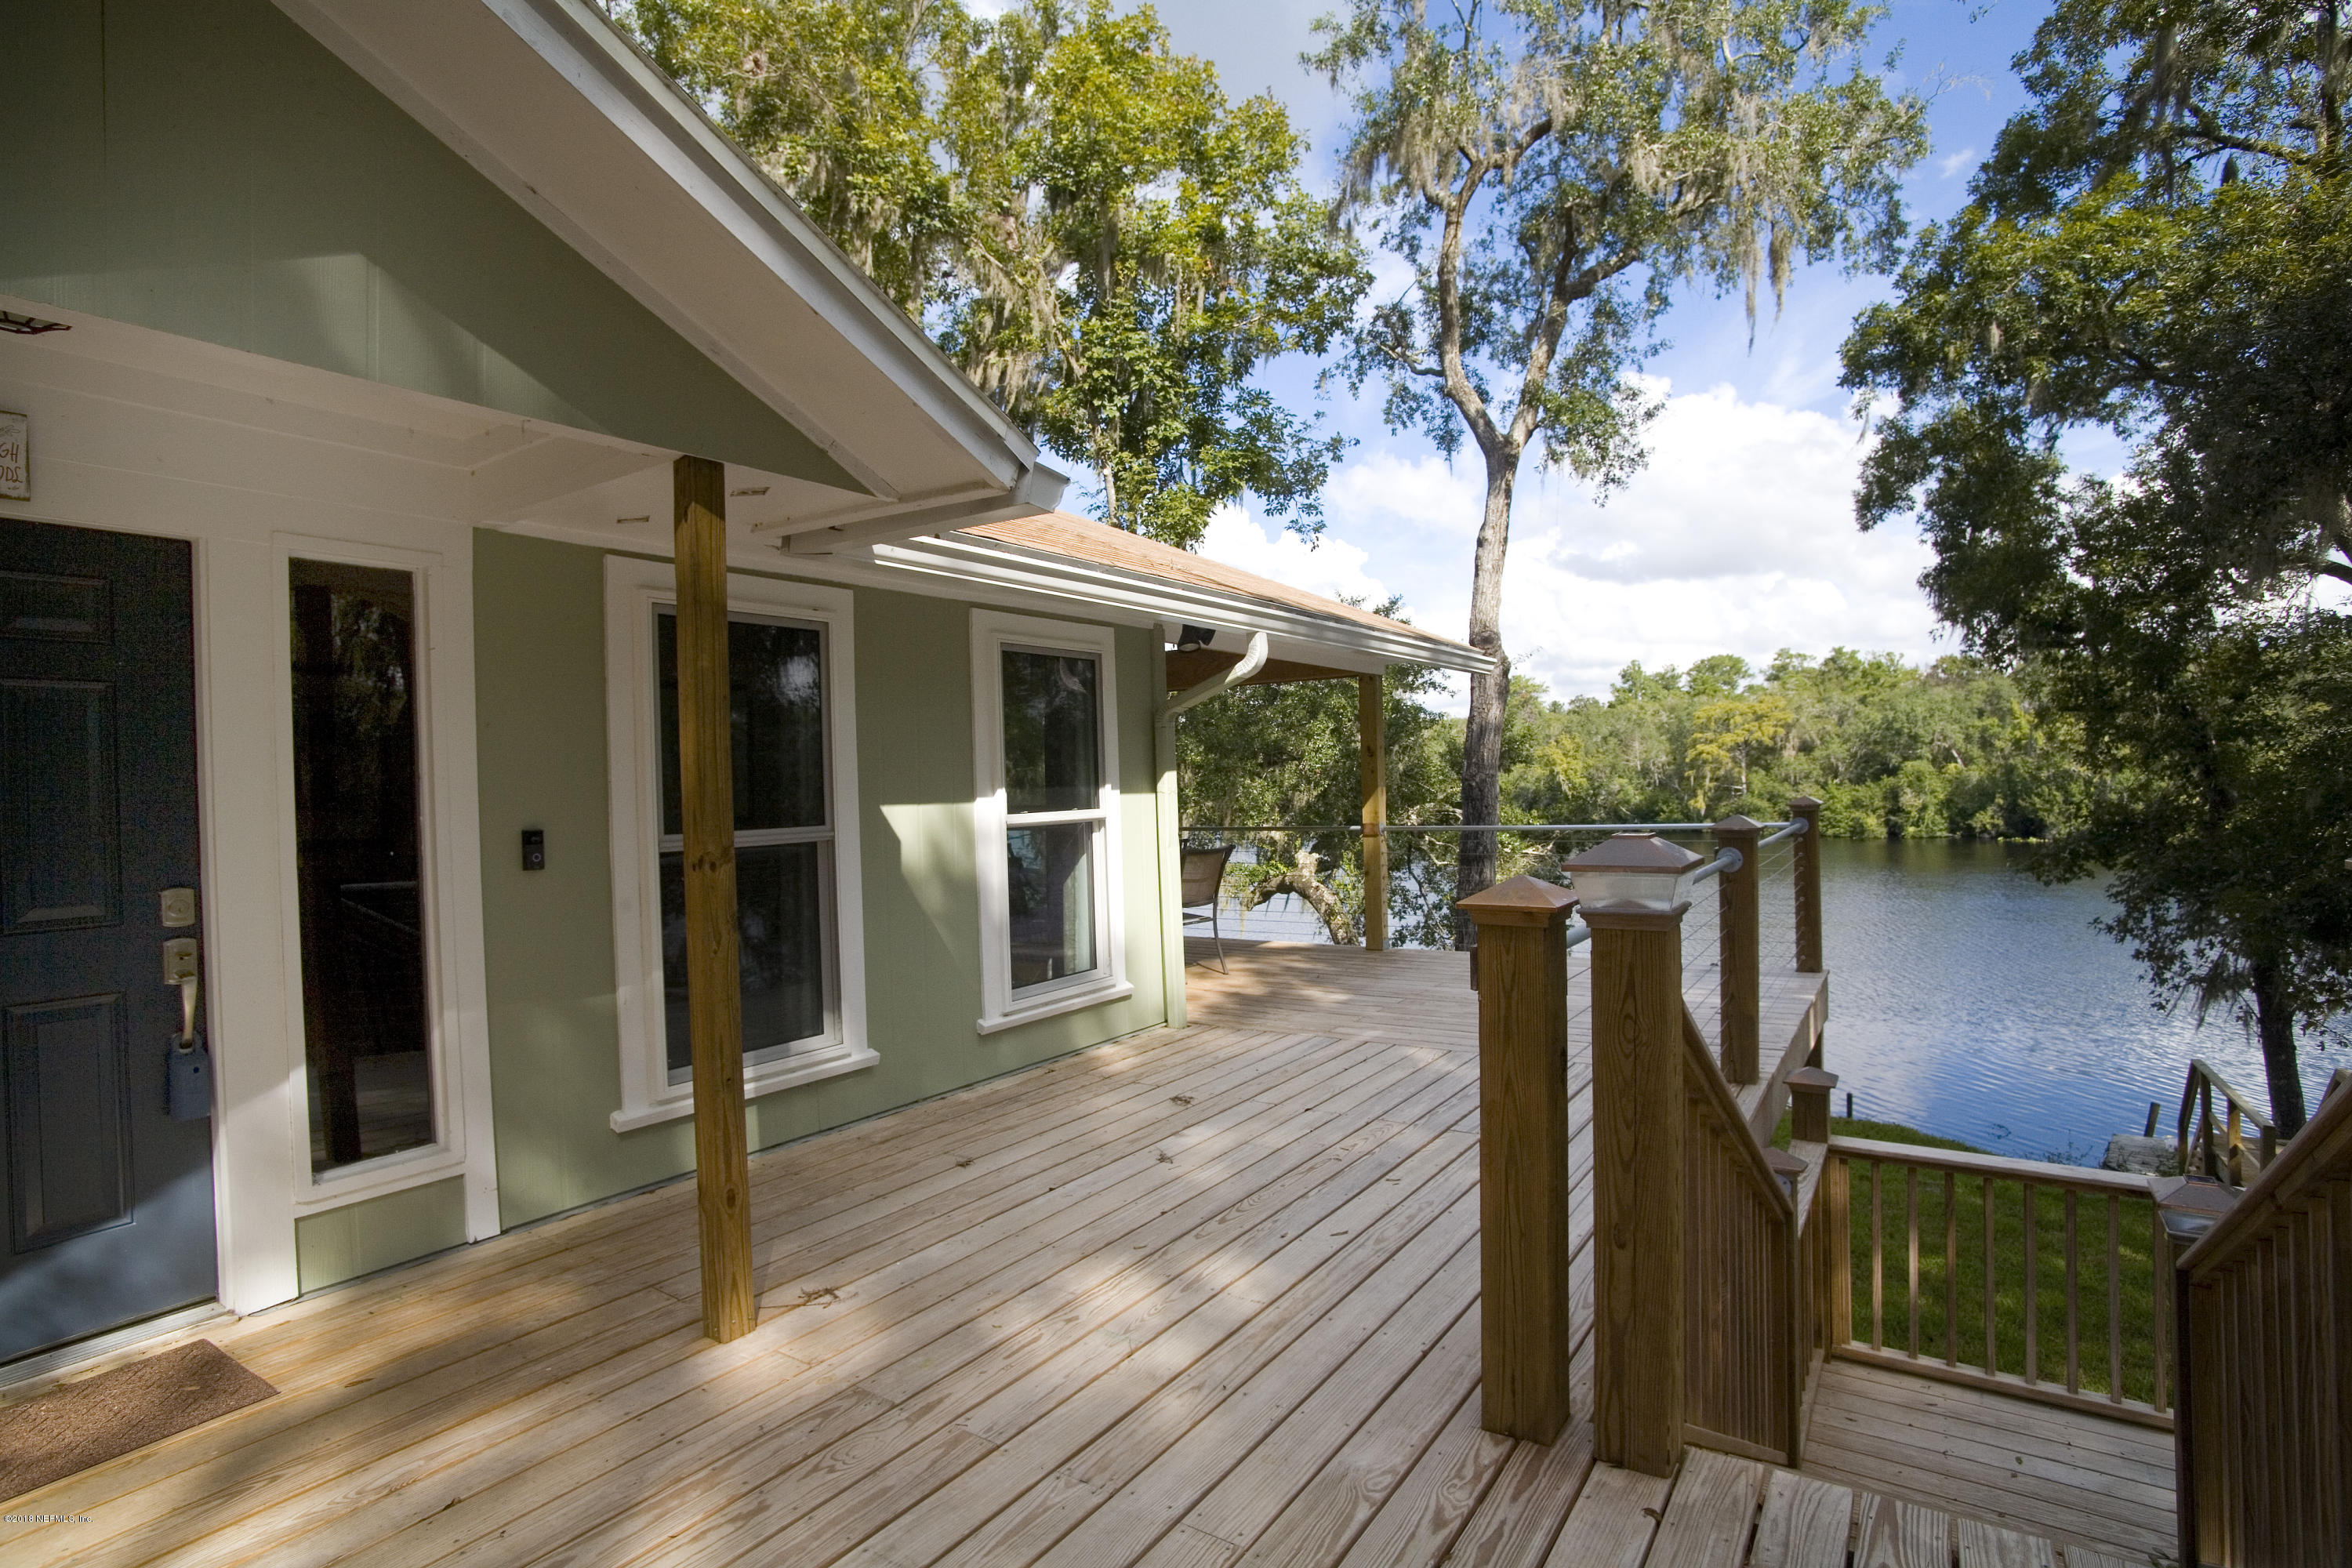 359 LAKE ASBURY, GREEN COVE SPRINGS, FLORIDA 32043, 3 Bedrooms Bedrooms, ,3 BathroomsBathrooms,Residential - single family,For sale,LAKE ASBURY,961751